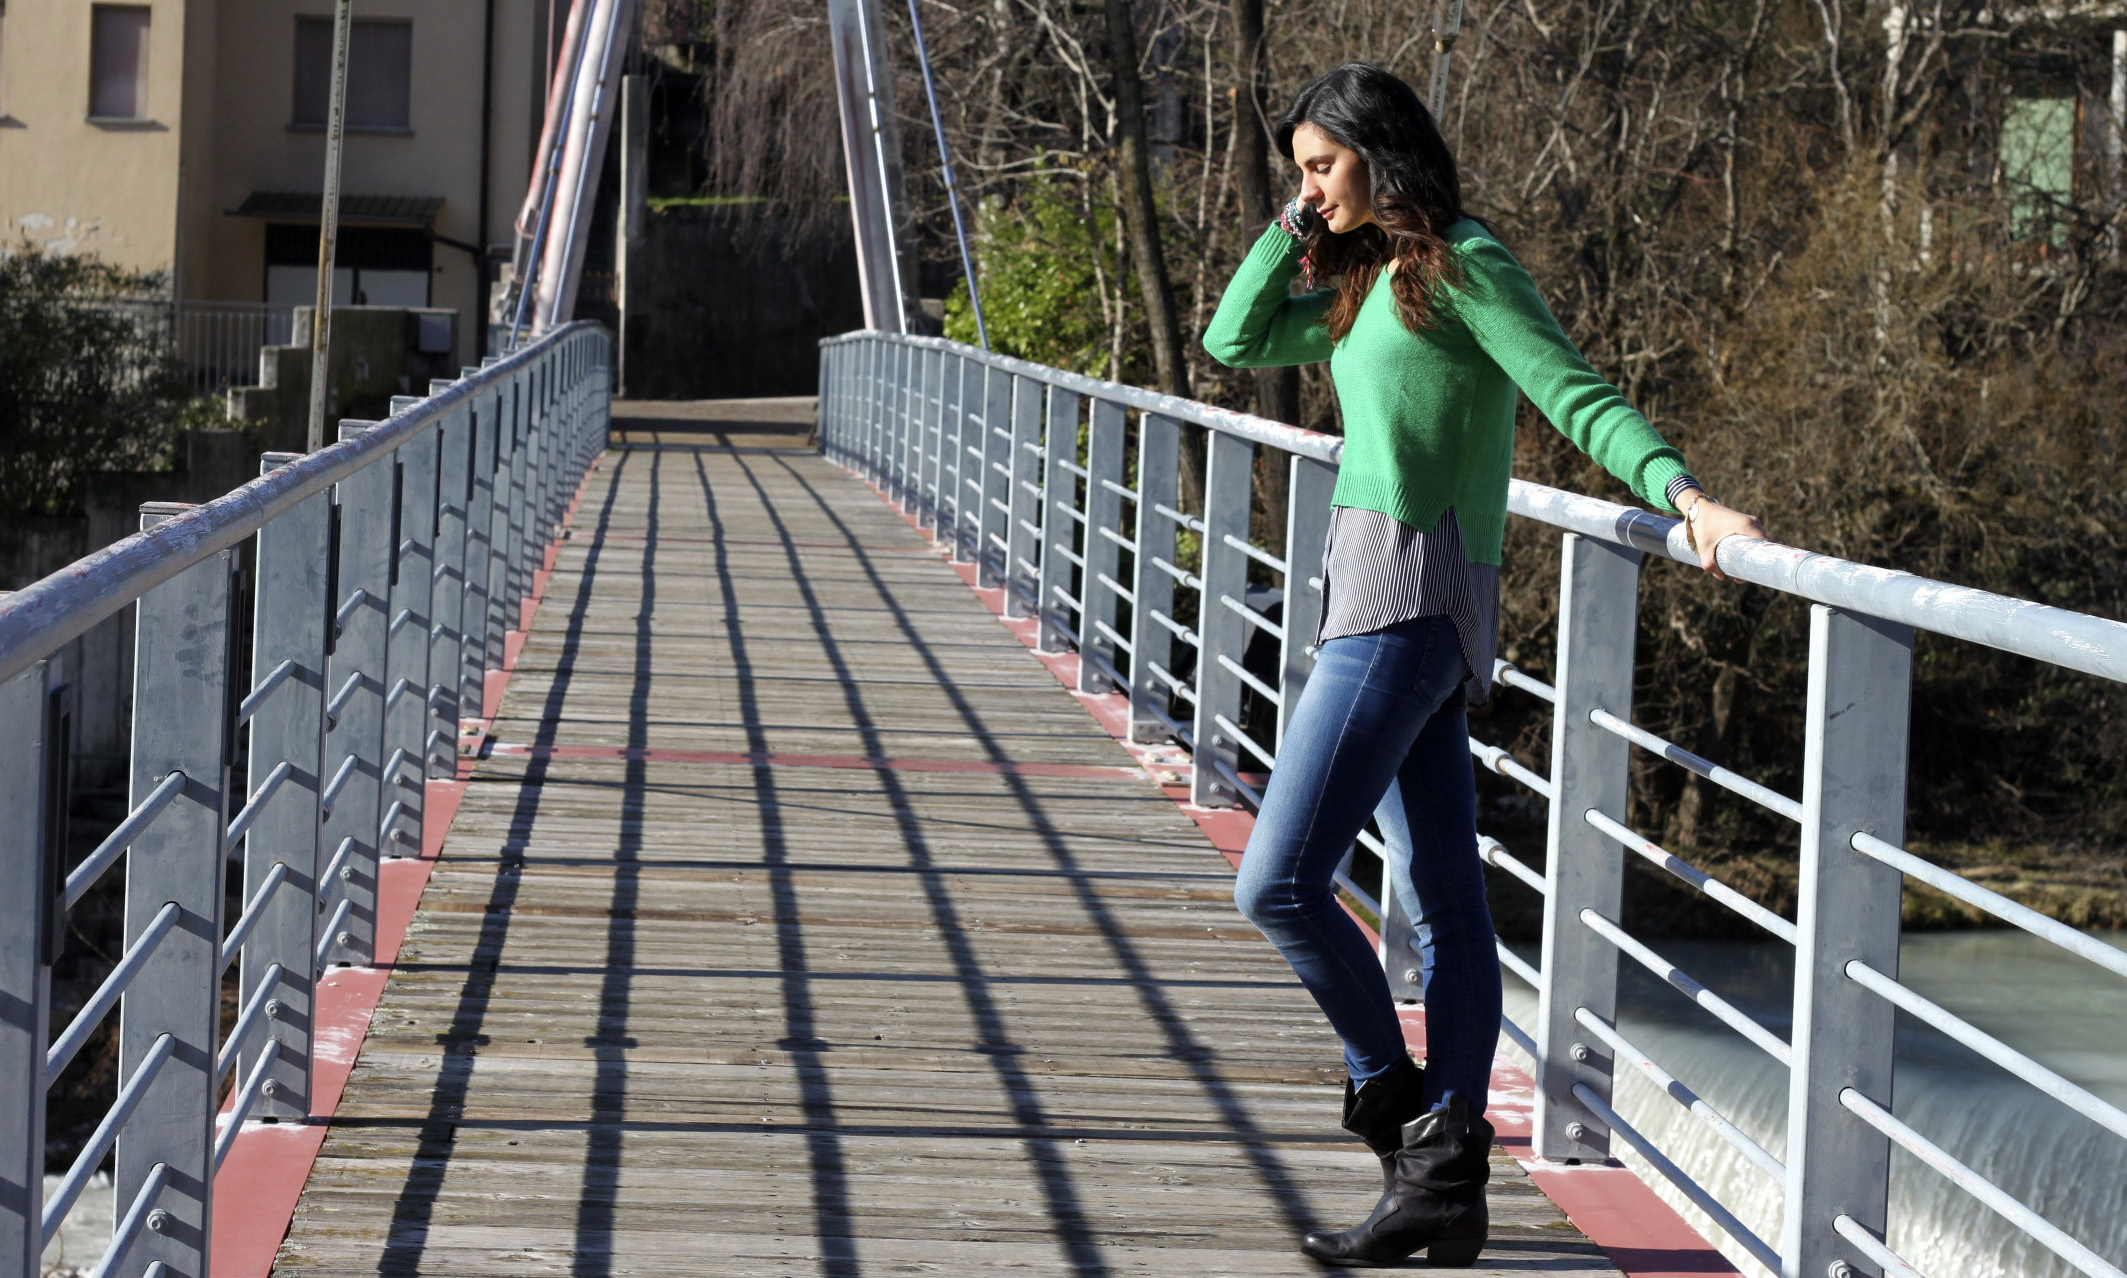 OUTFIT OF THE DAY: CAPPOTTO CON MANICHE A CAMPANA, JUMPER VERDE E BLUSA A RIGHE